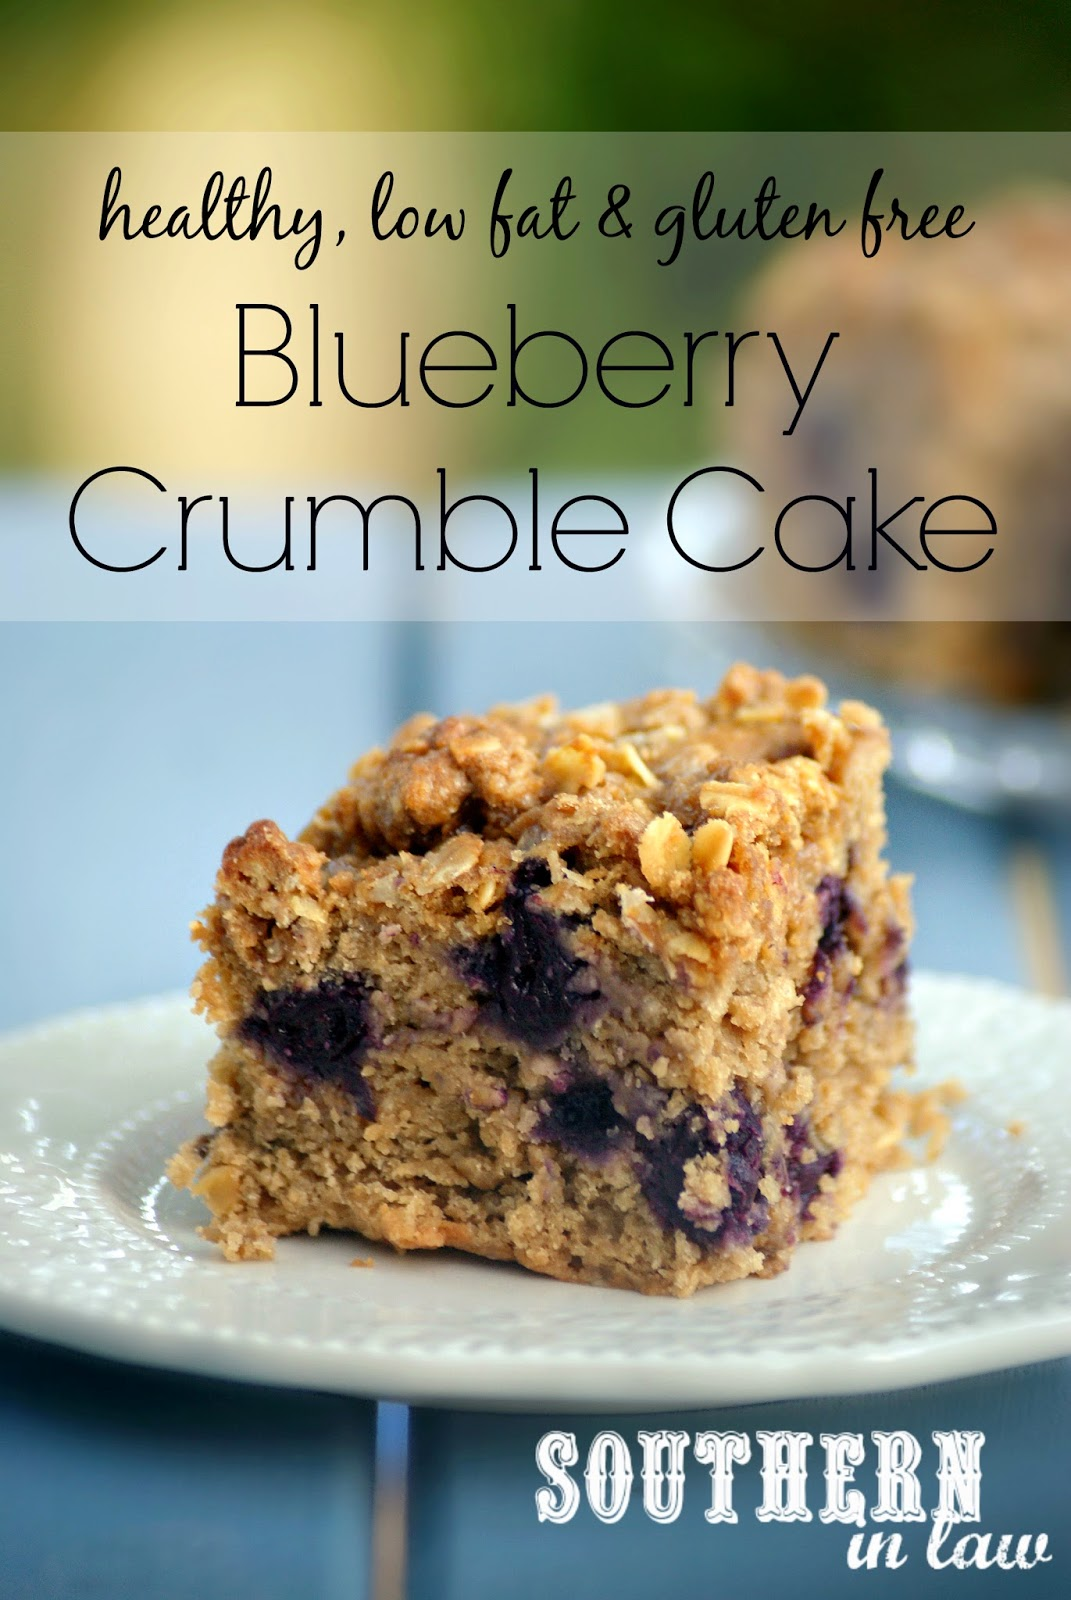 ... and Gluten Free Lifestyle Blog: Recipe: Healthy Blueberry Crumble Cake